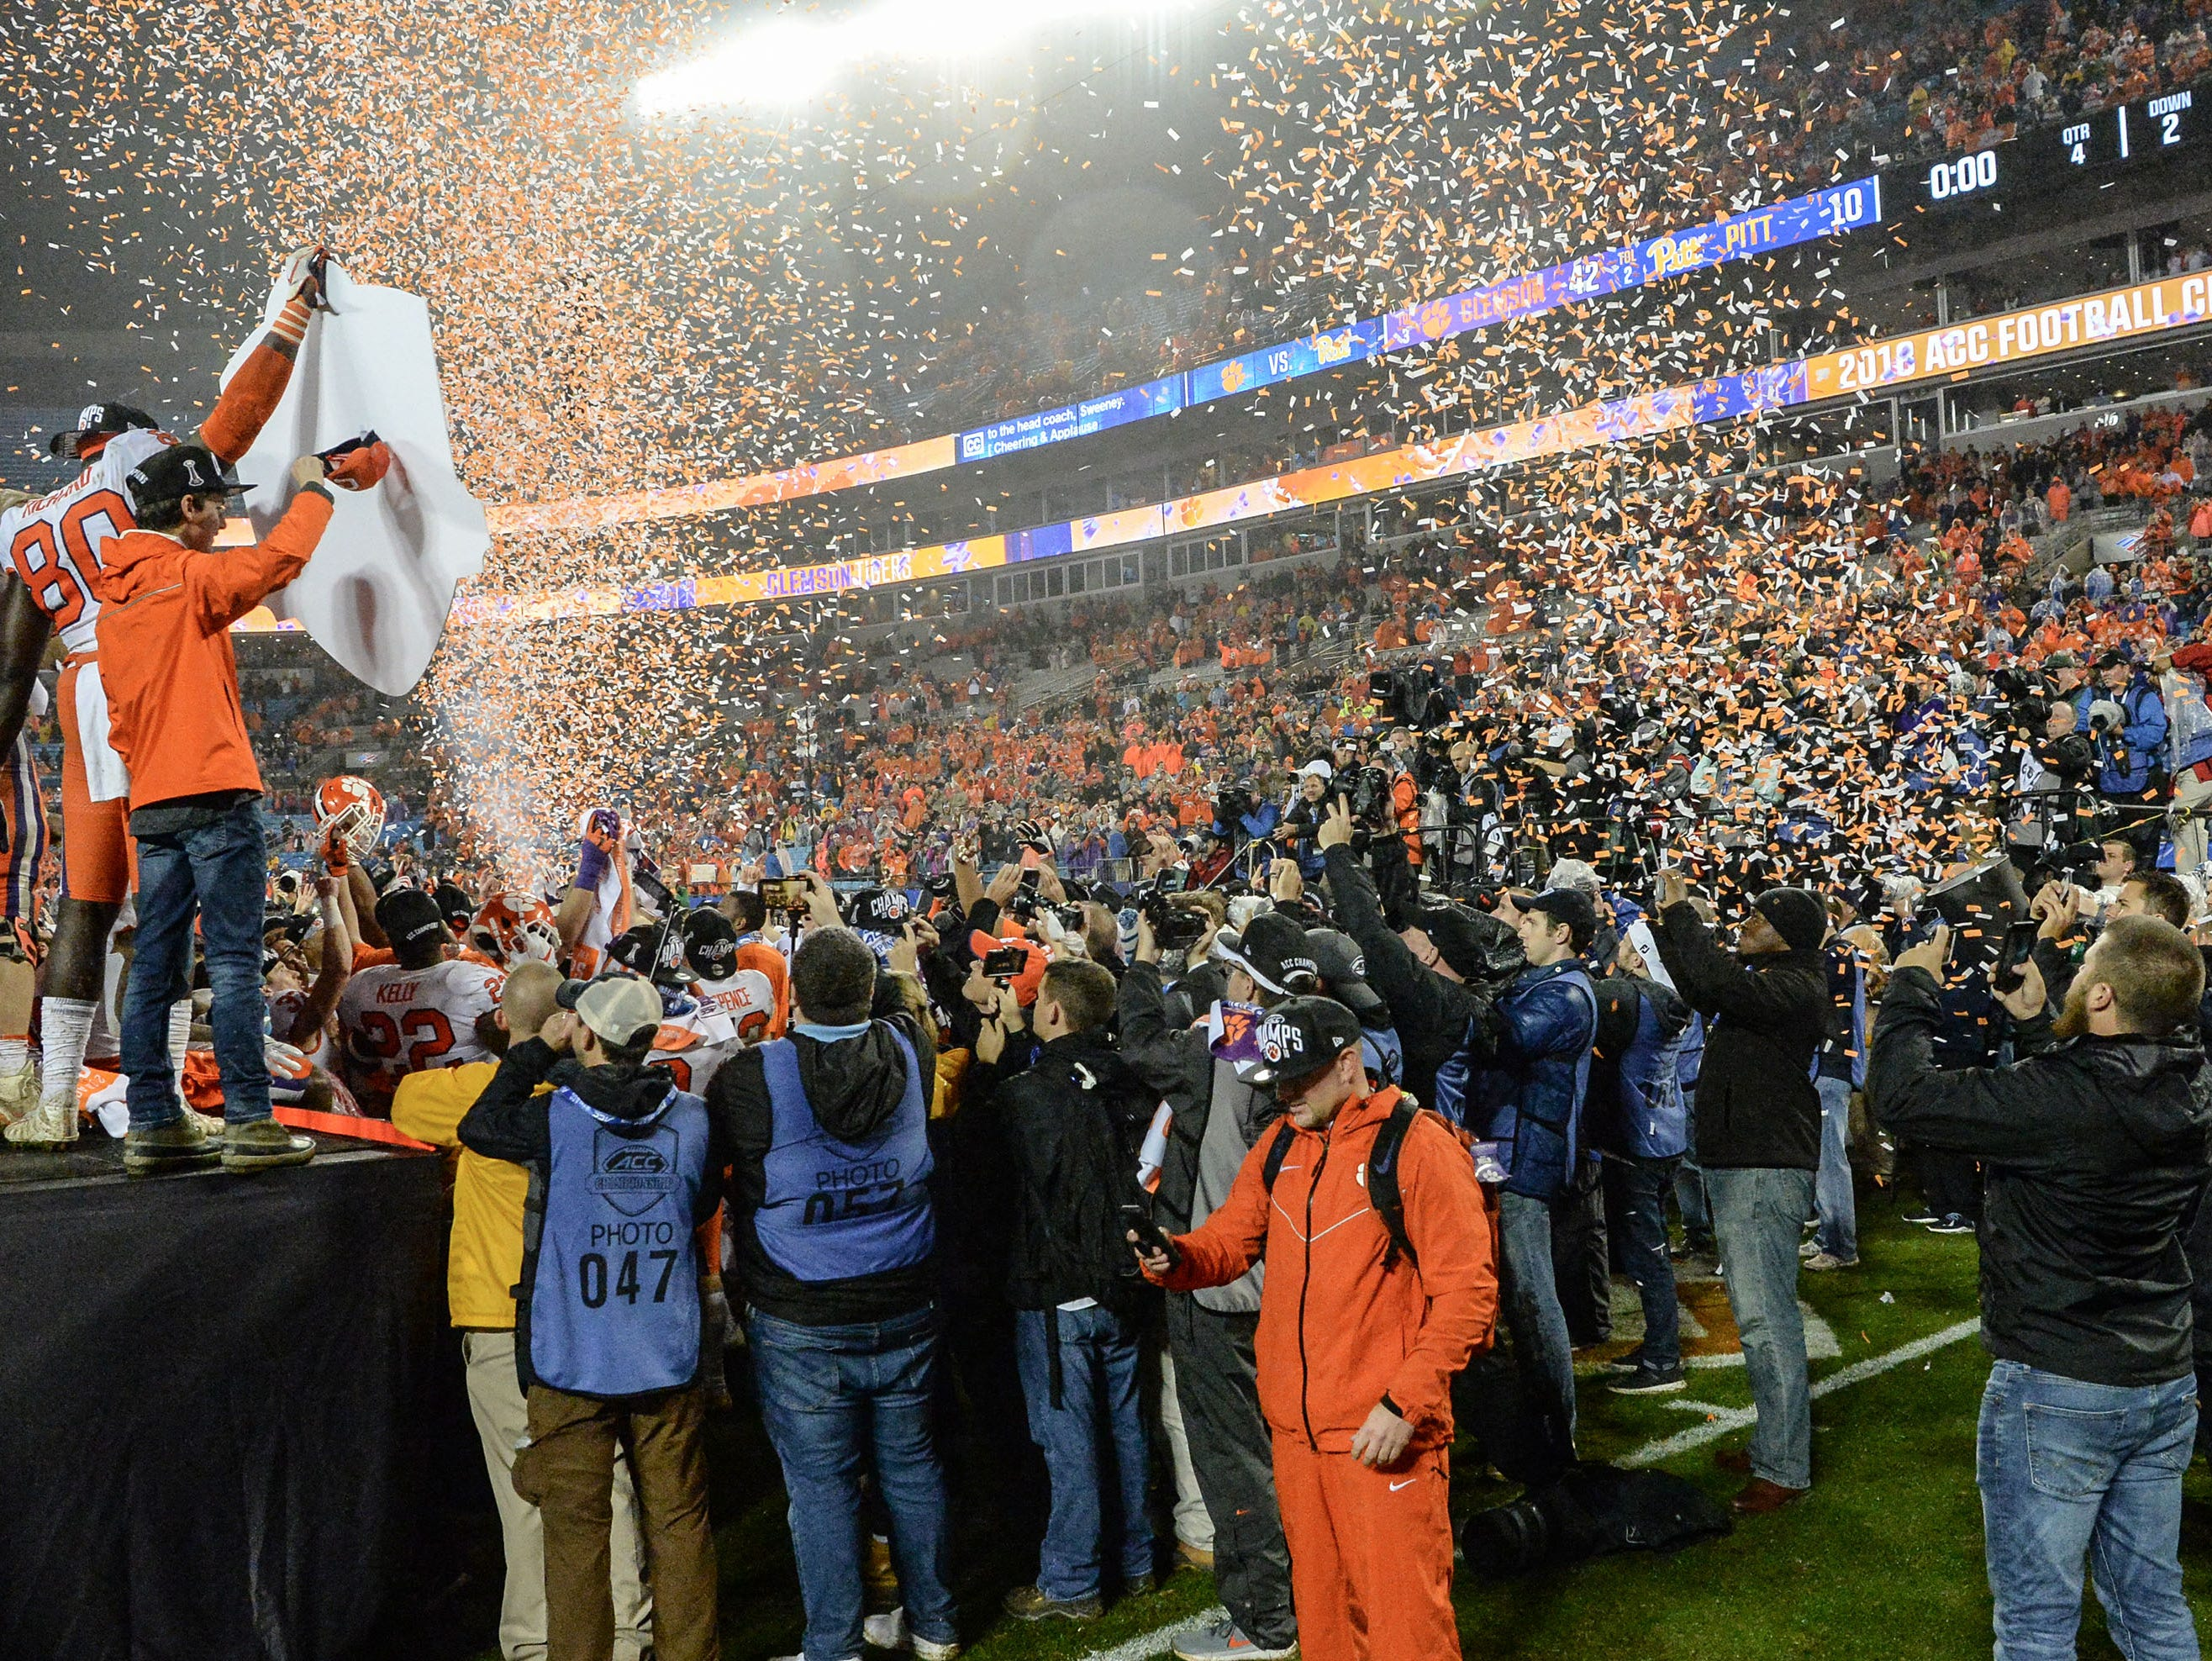 Clemson players and fans celebrate a 42-10 win over Pittsburgh after the game at the Dr. Pepper ACC football championship at Bank of America Stadium in Charlotte, N.C. on Saturday, December 1, 2018.